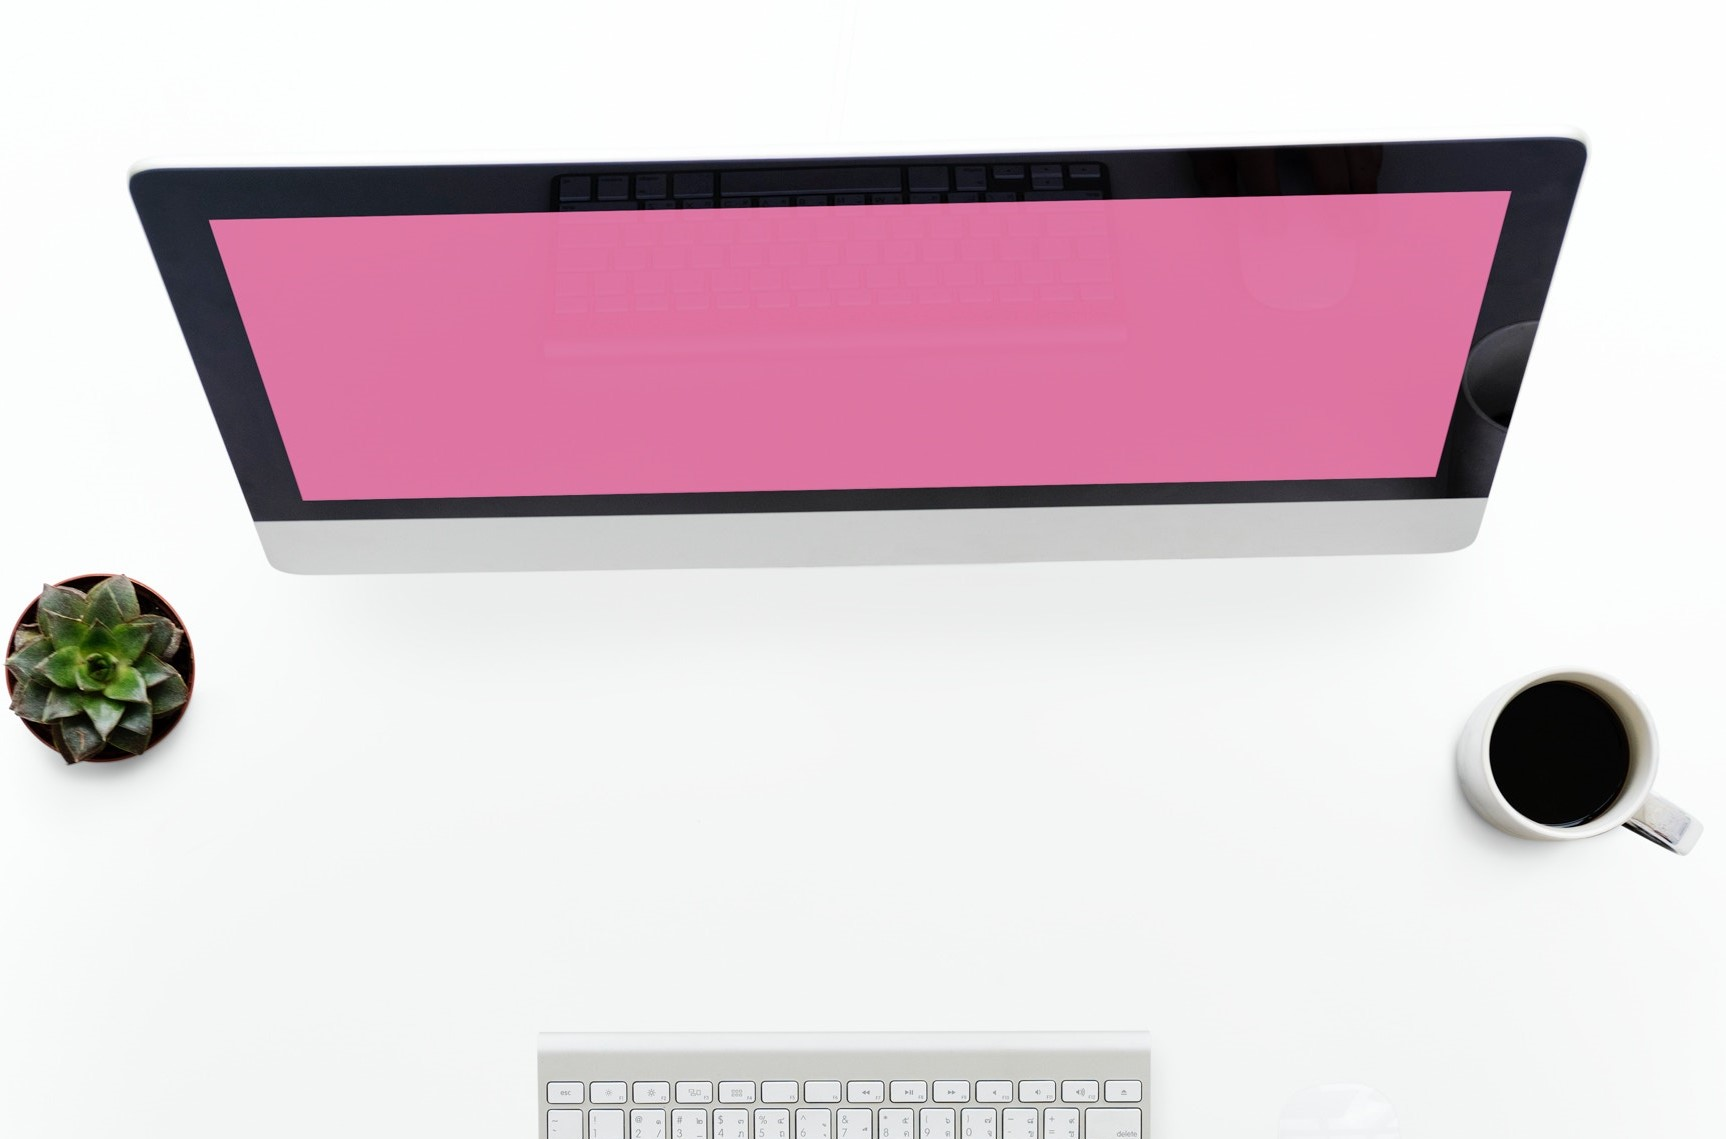 Pink screen and keyboard